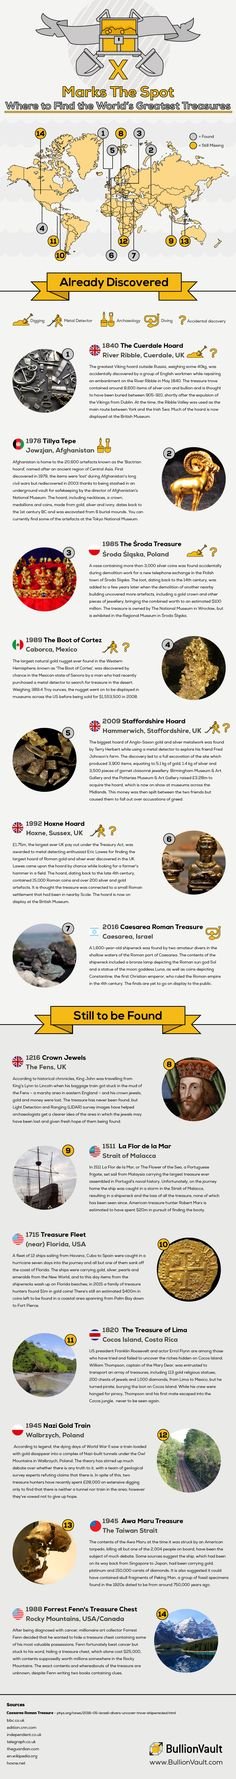 Where to Find the World's Greatest Treasures #Infographic #Travel